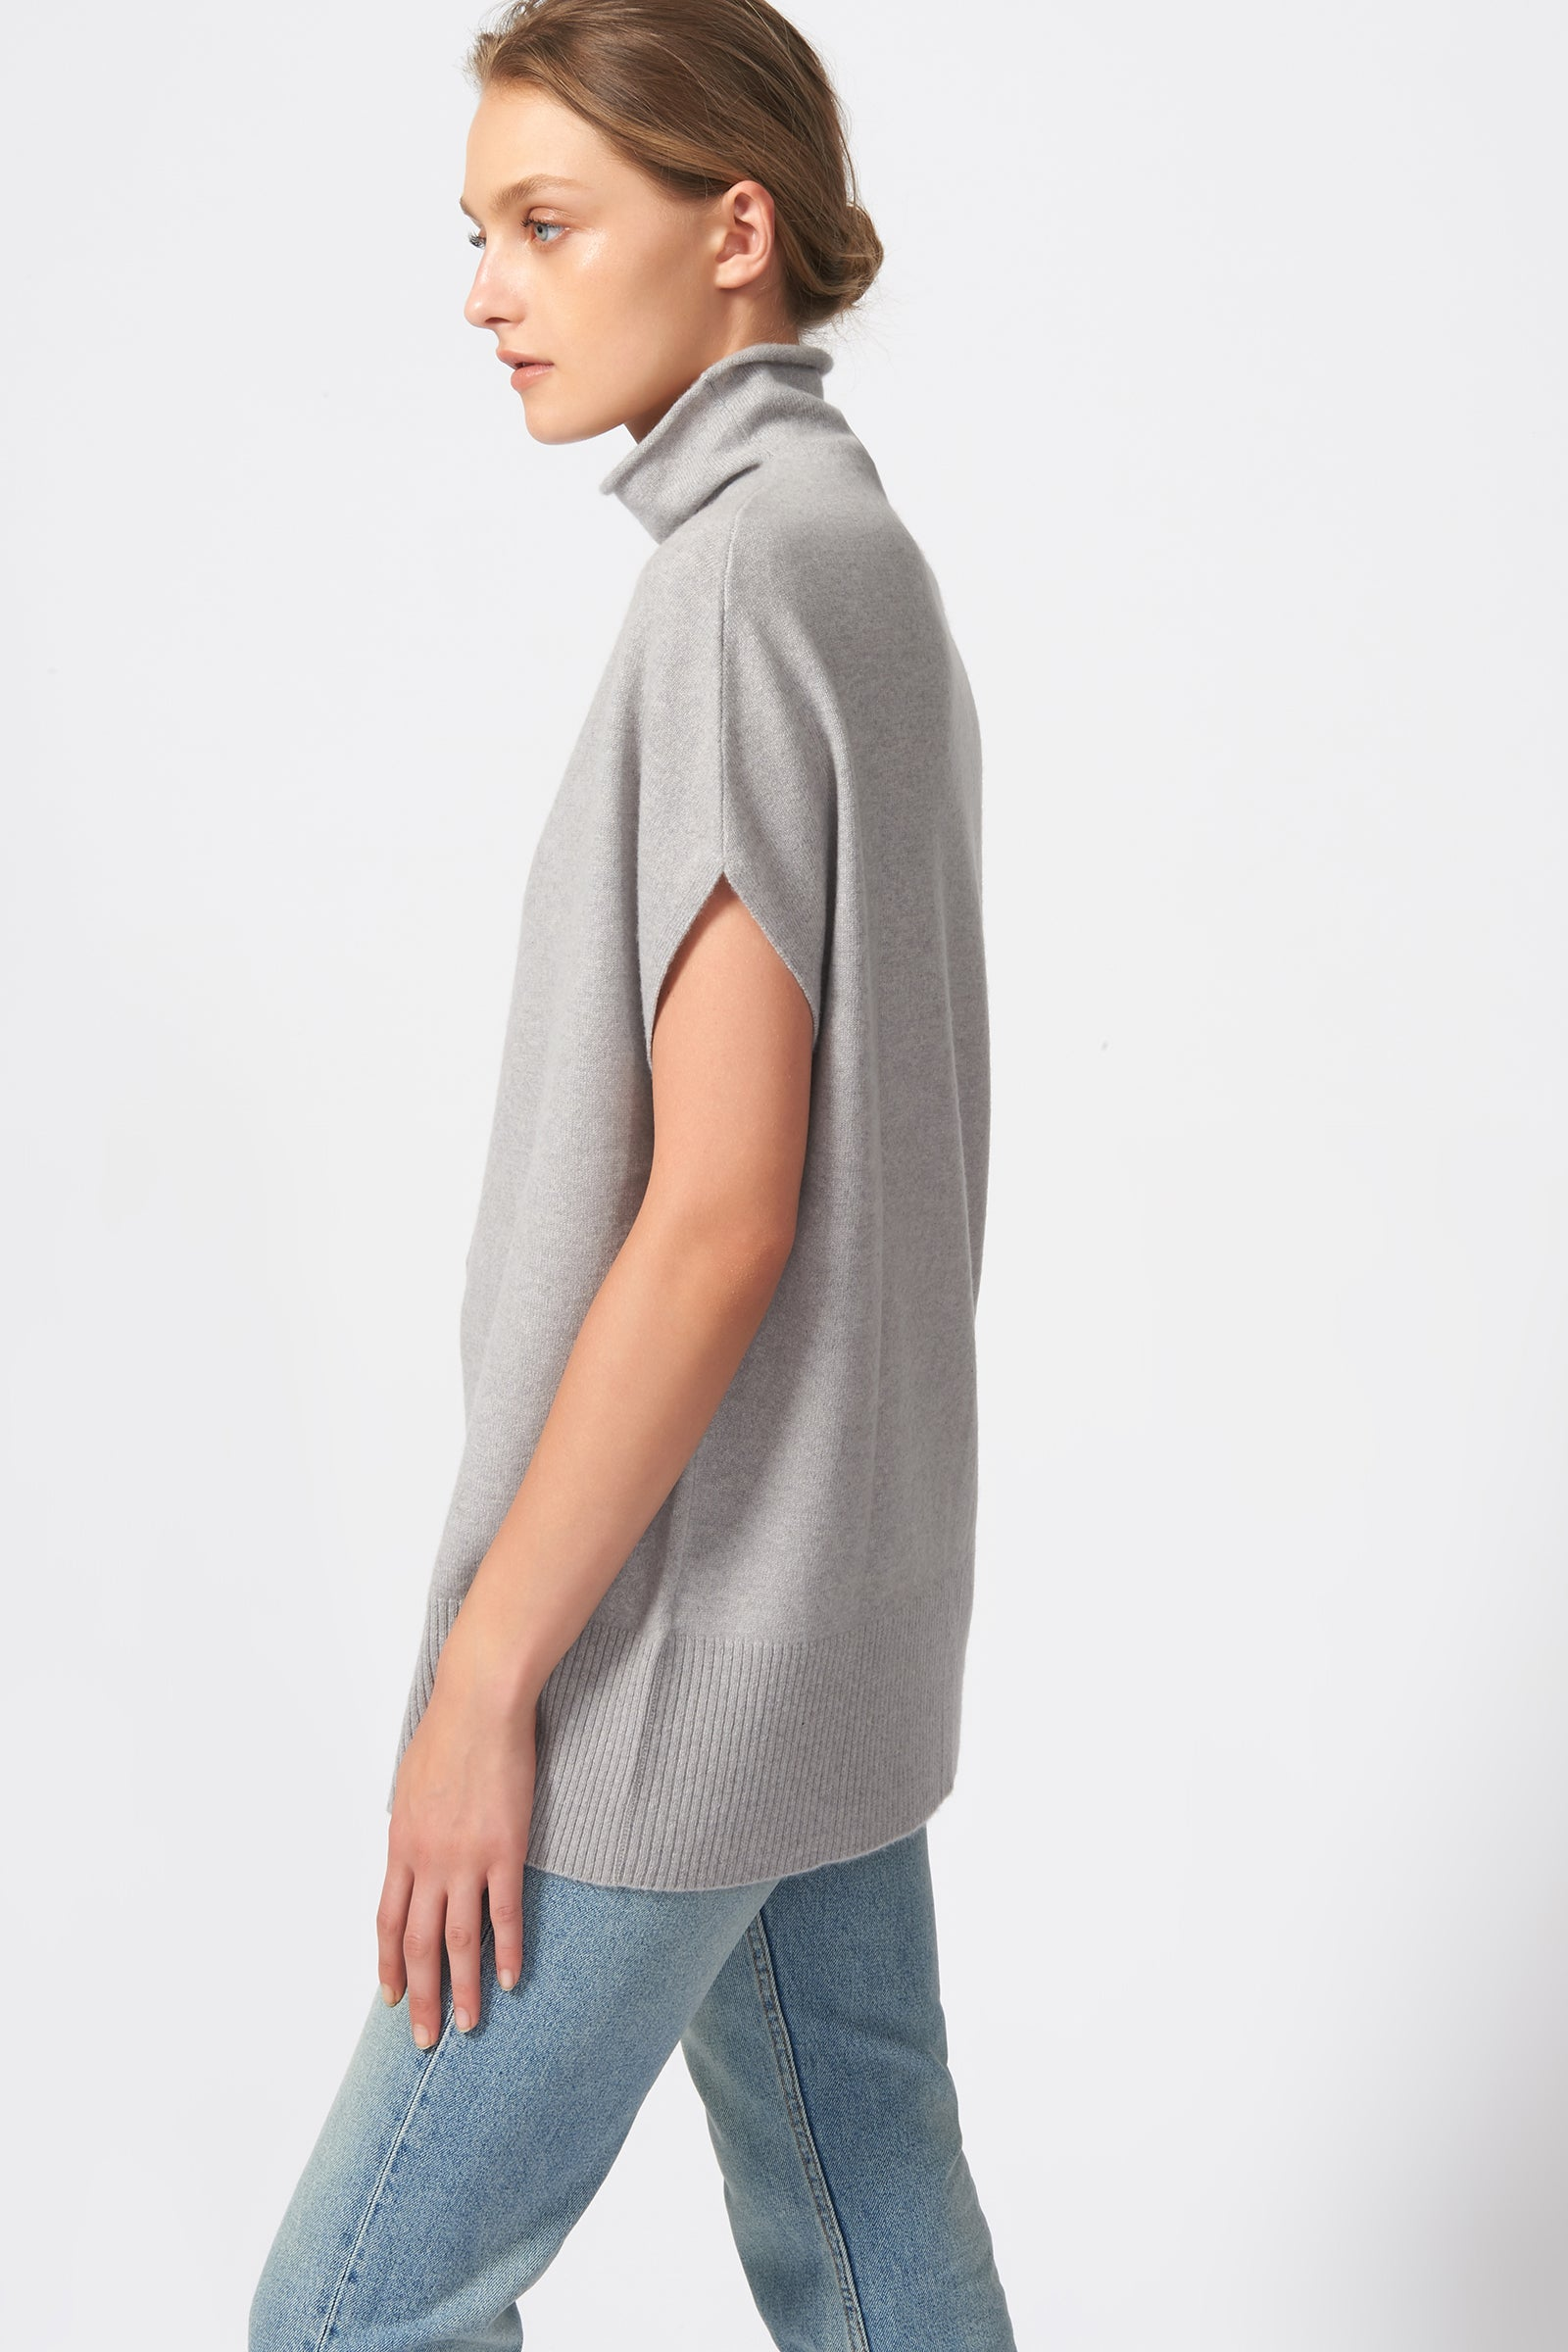 Kal Rieman Cashmere Funnelneck in Heather Grey on Model Side View